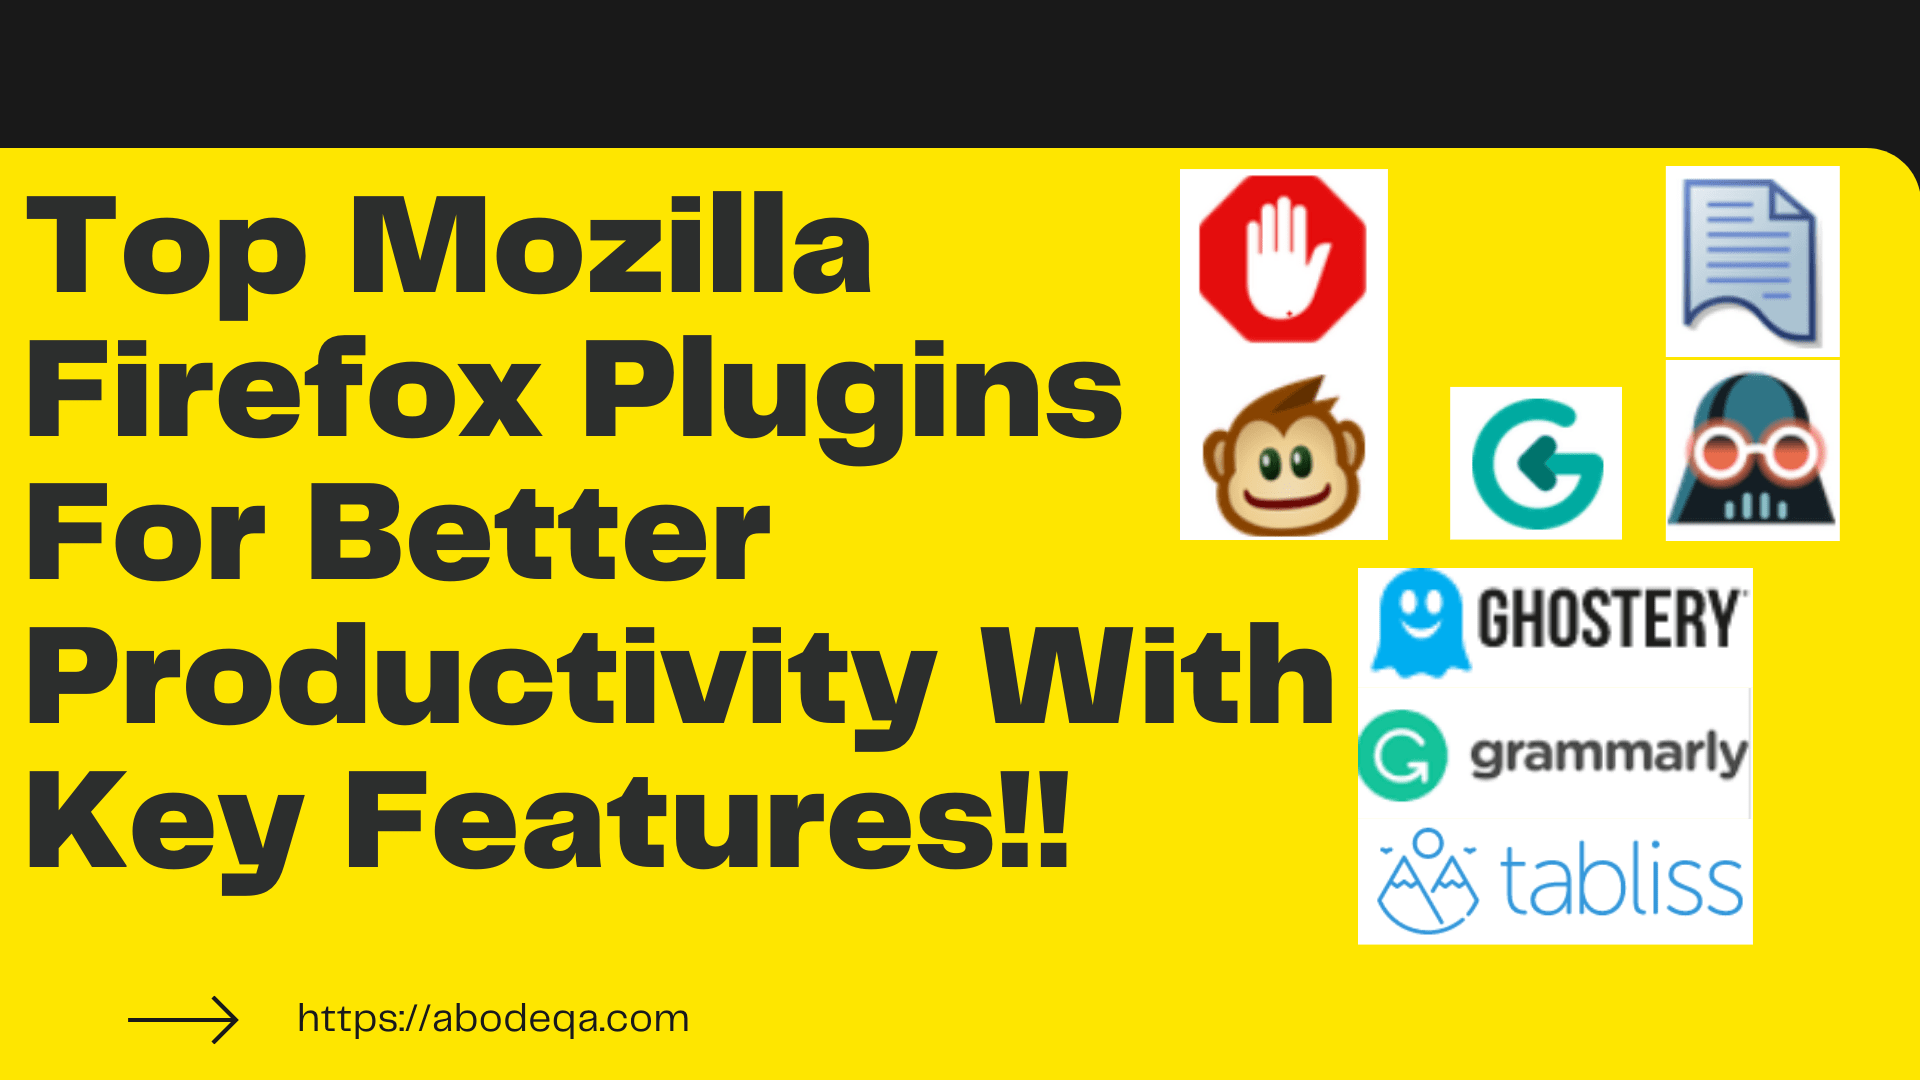 Top Mozilla Firefox Plugins For Better Productivity With Key Features!!